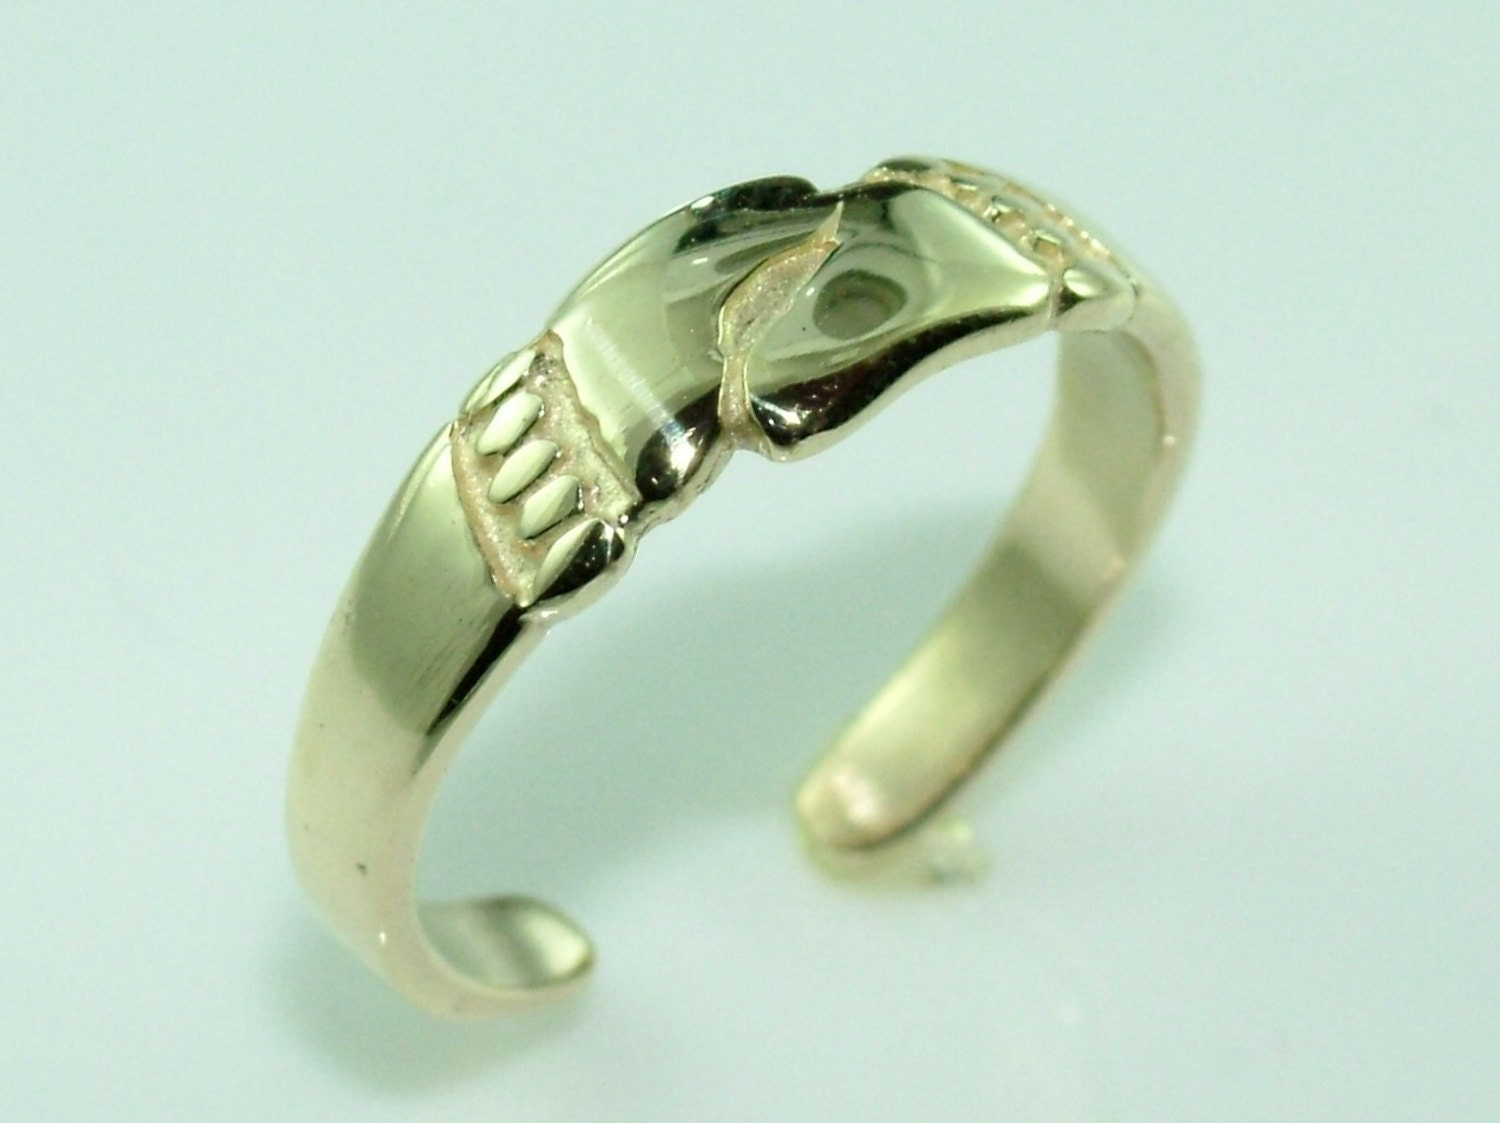 10k gold footprints knuckle toe ring adjustable